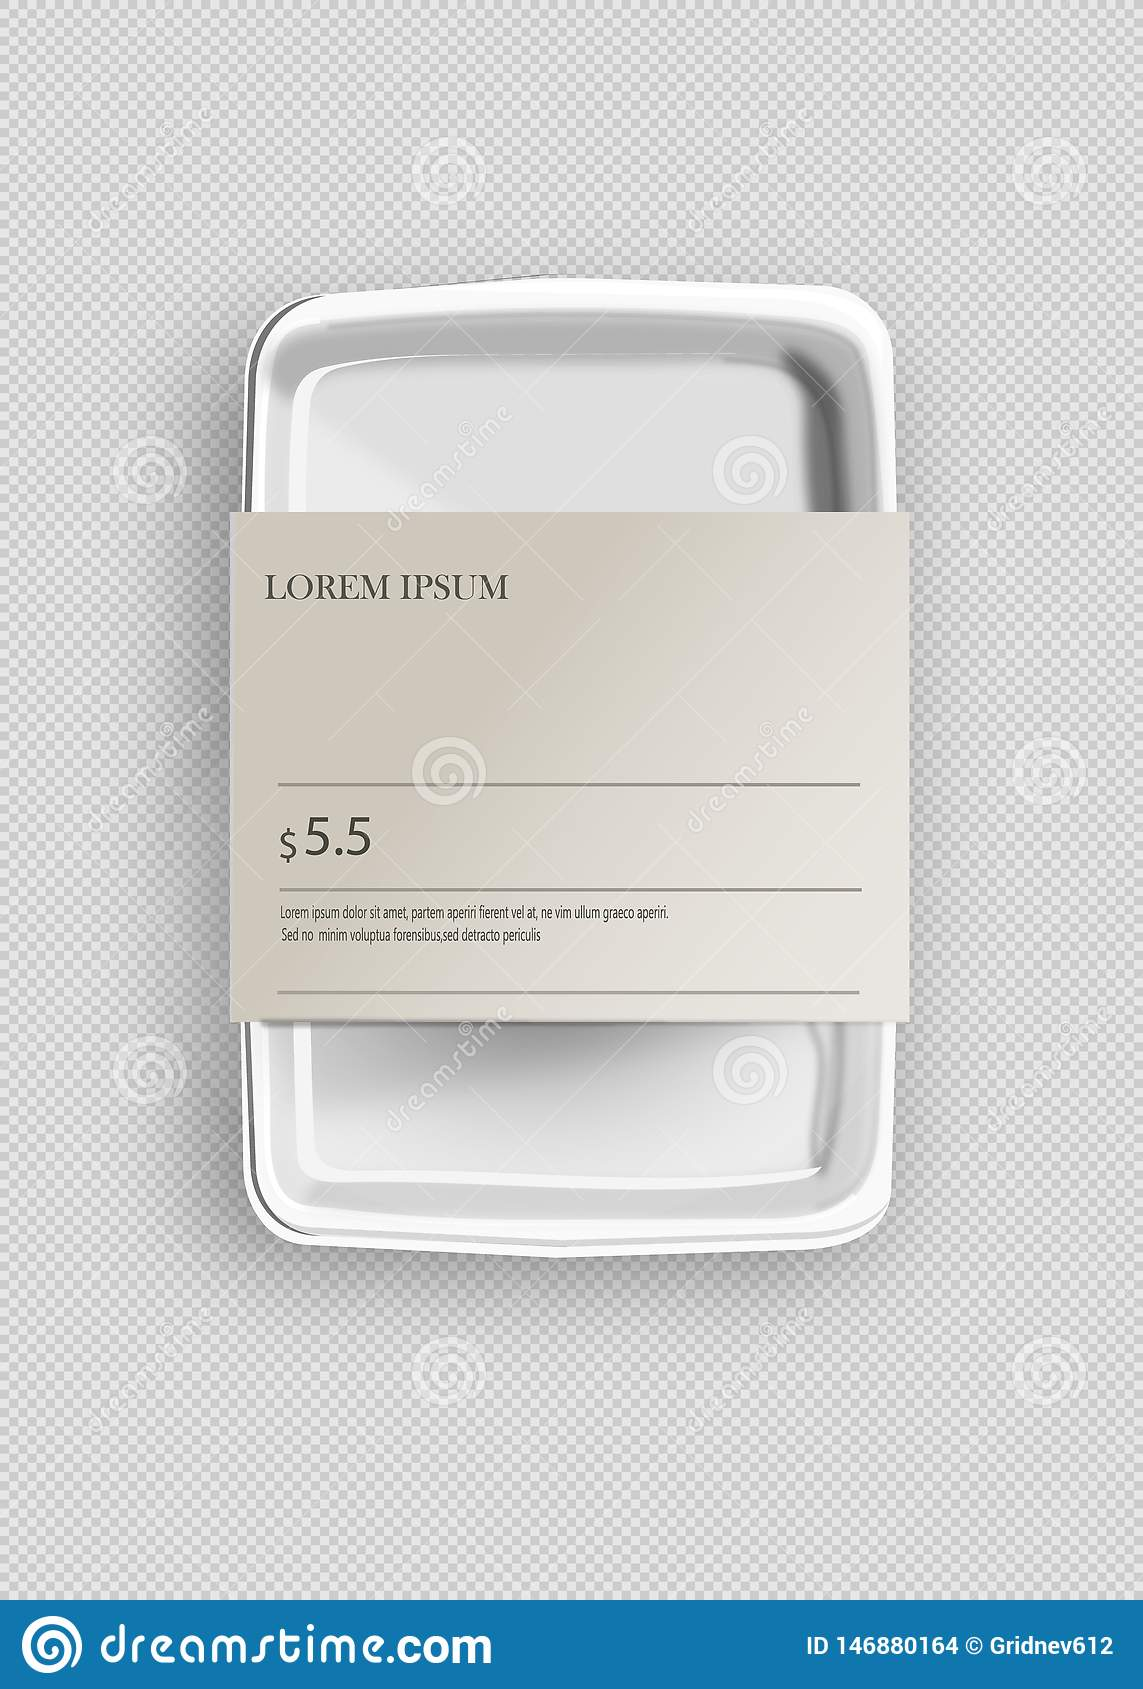 White Mockup Empty Blank Styrofoam Plastic Food Tray Container With Lable. Illustration Isolated On Gray Background. Mock Up